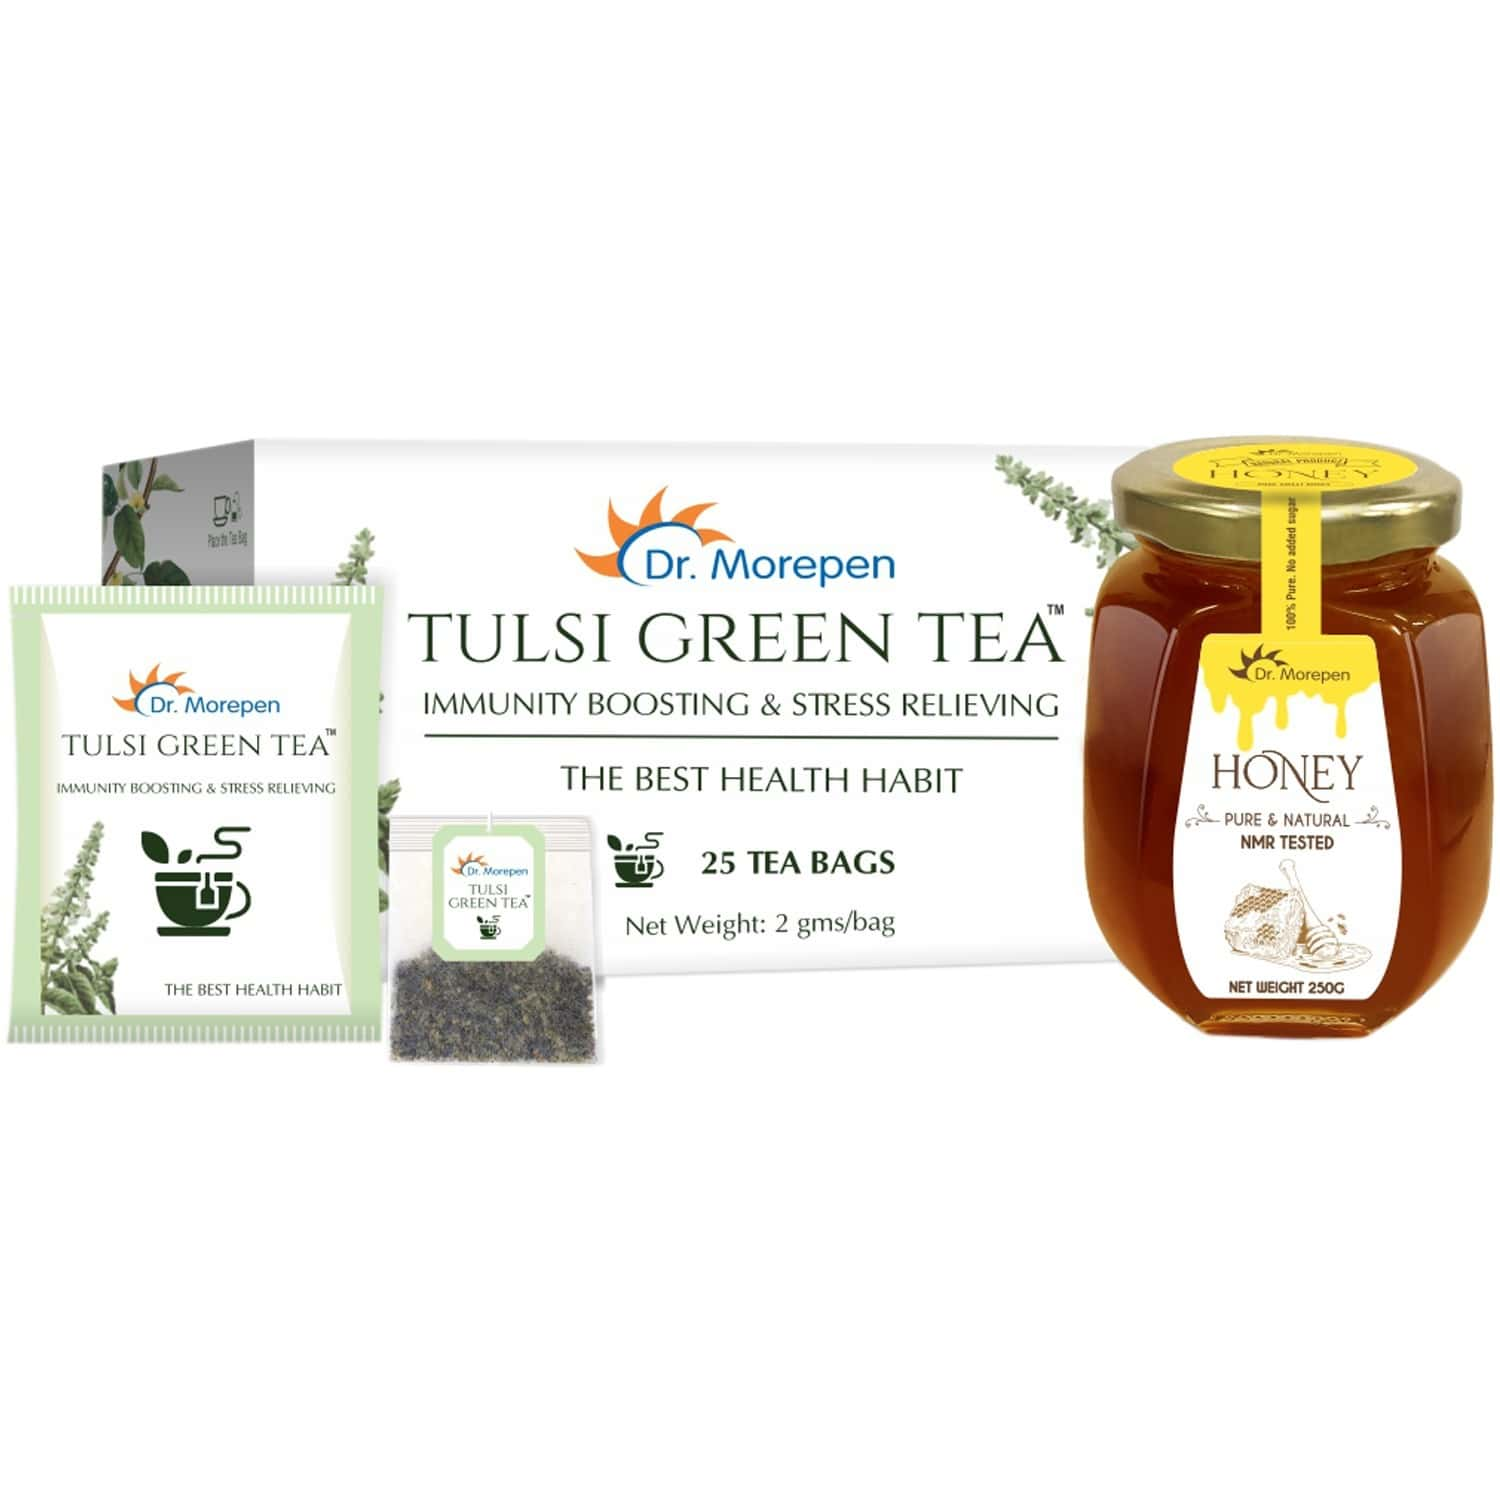 Dr. Morepen Natural & Pure Honey Nmr Tested - 250g & Tulsi Green Tea - 25 Bags   Immunity Booster Kit